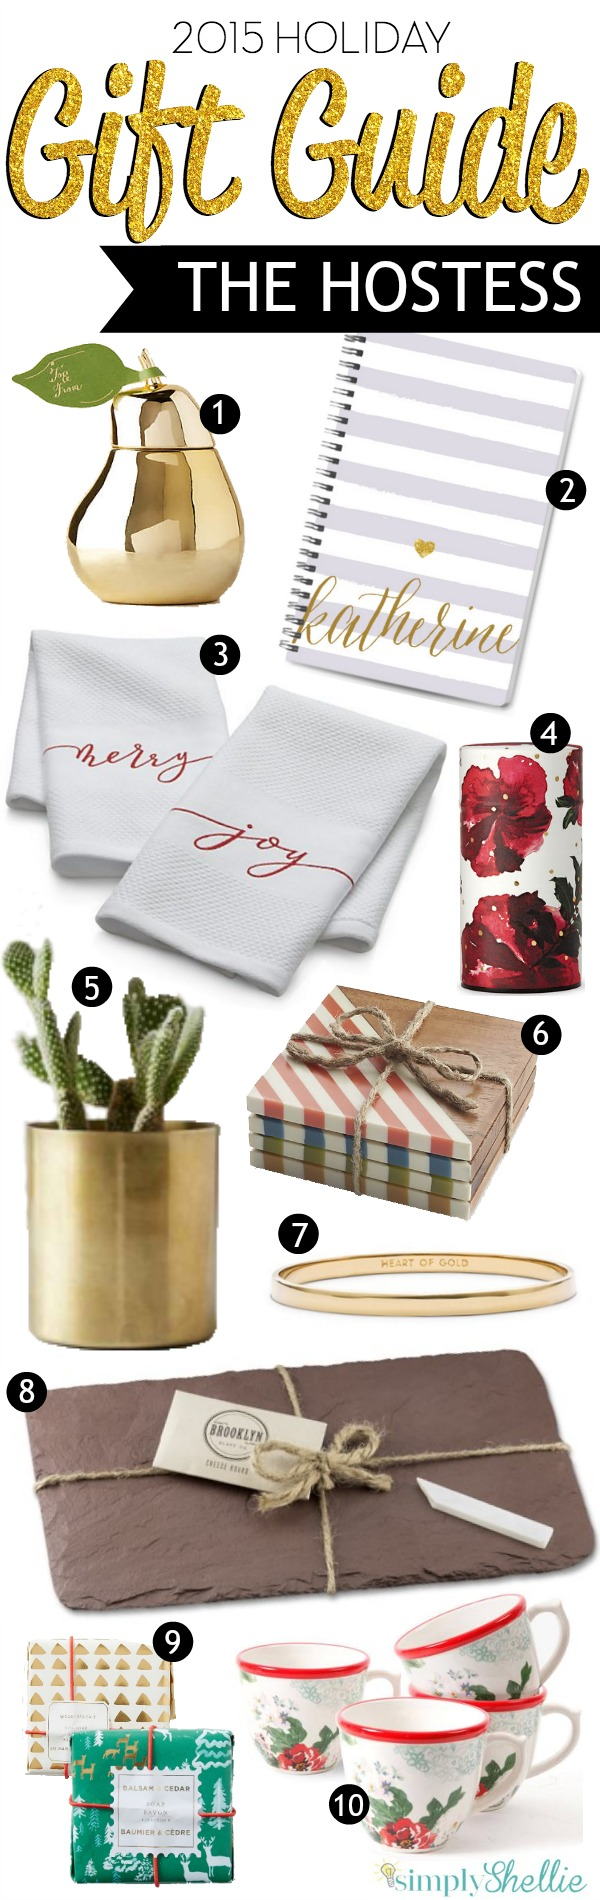 Host Gift Ideas holiday gift guide: fabulous hostess gift ideas